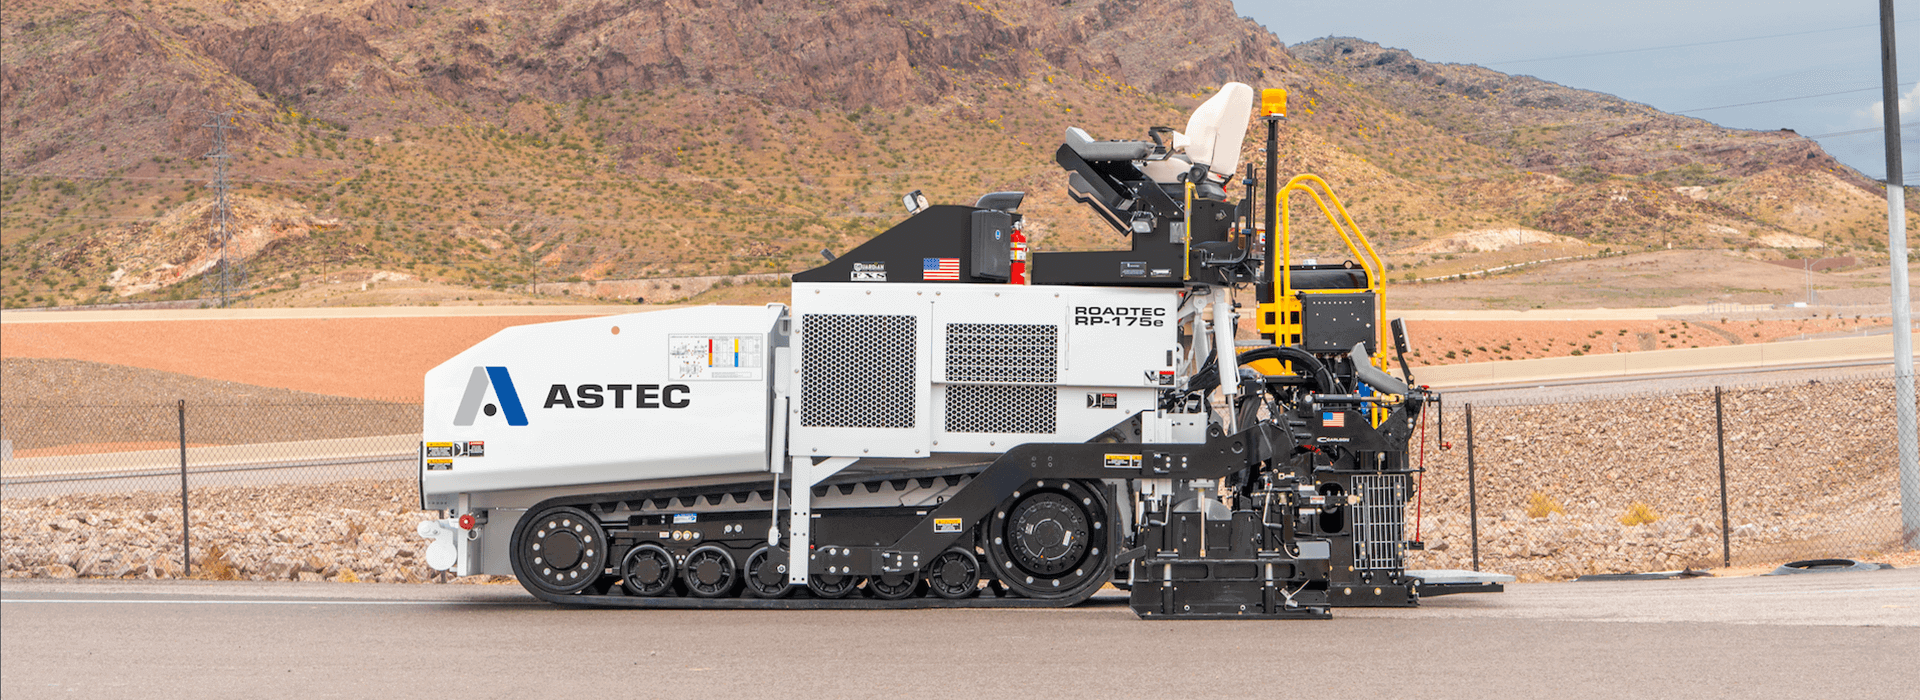 Roadtec RP-175 highway class asphalt paver on road with mountains in the background